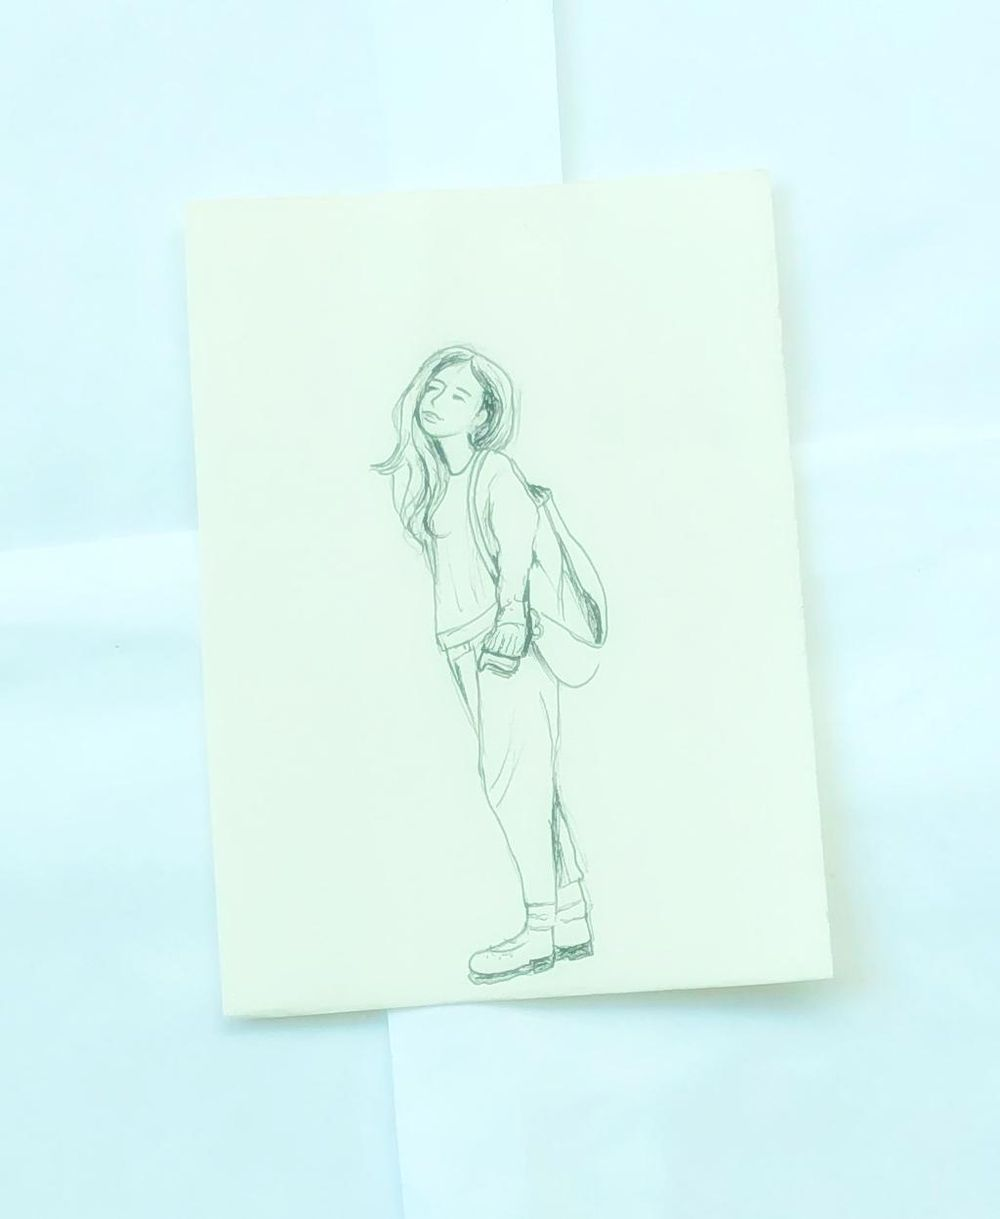 Minimal Sketching - image 1 - student project